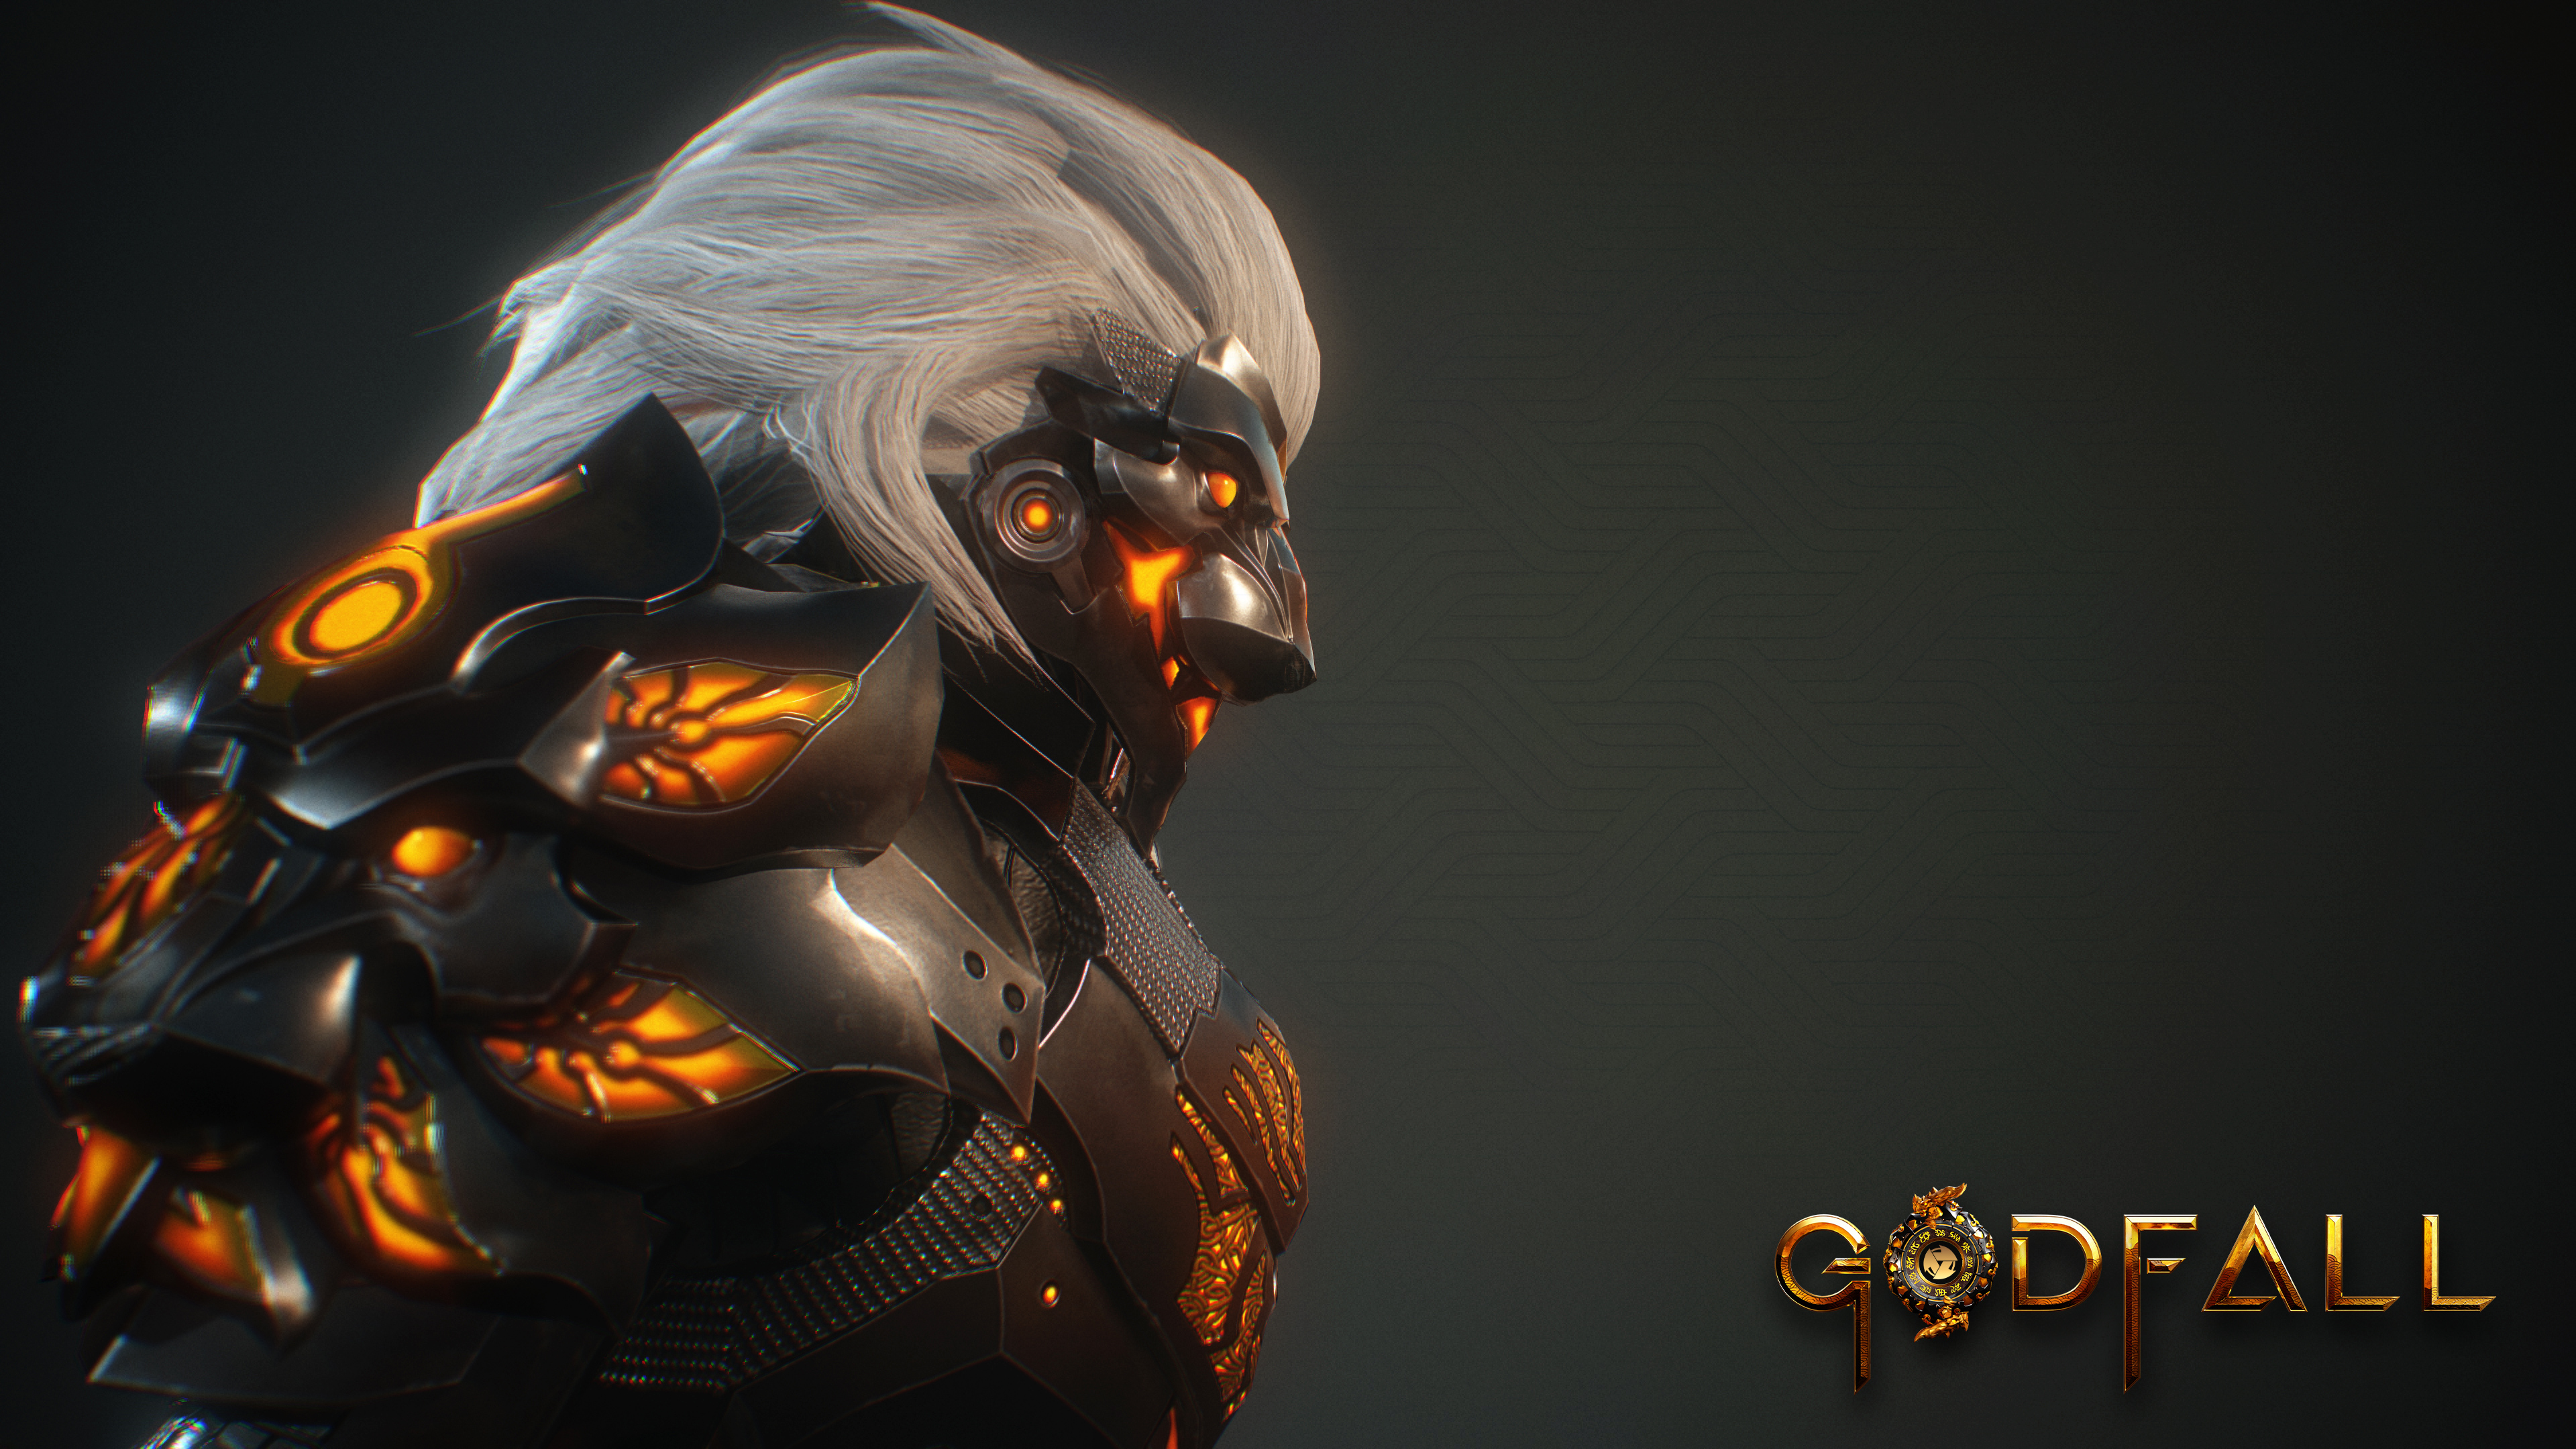 Wallpaper Character from Godfall